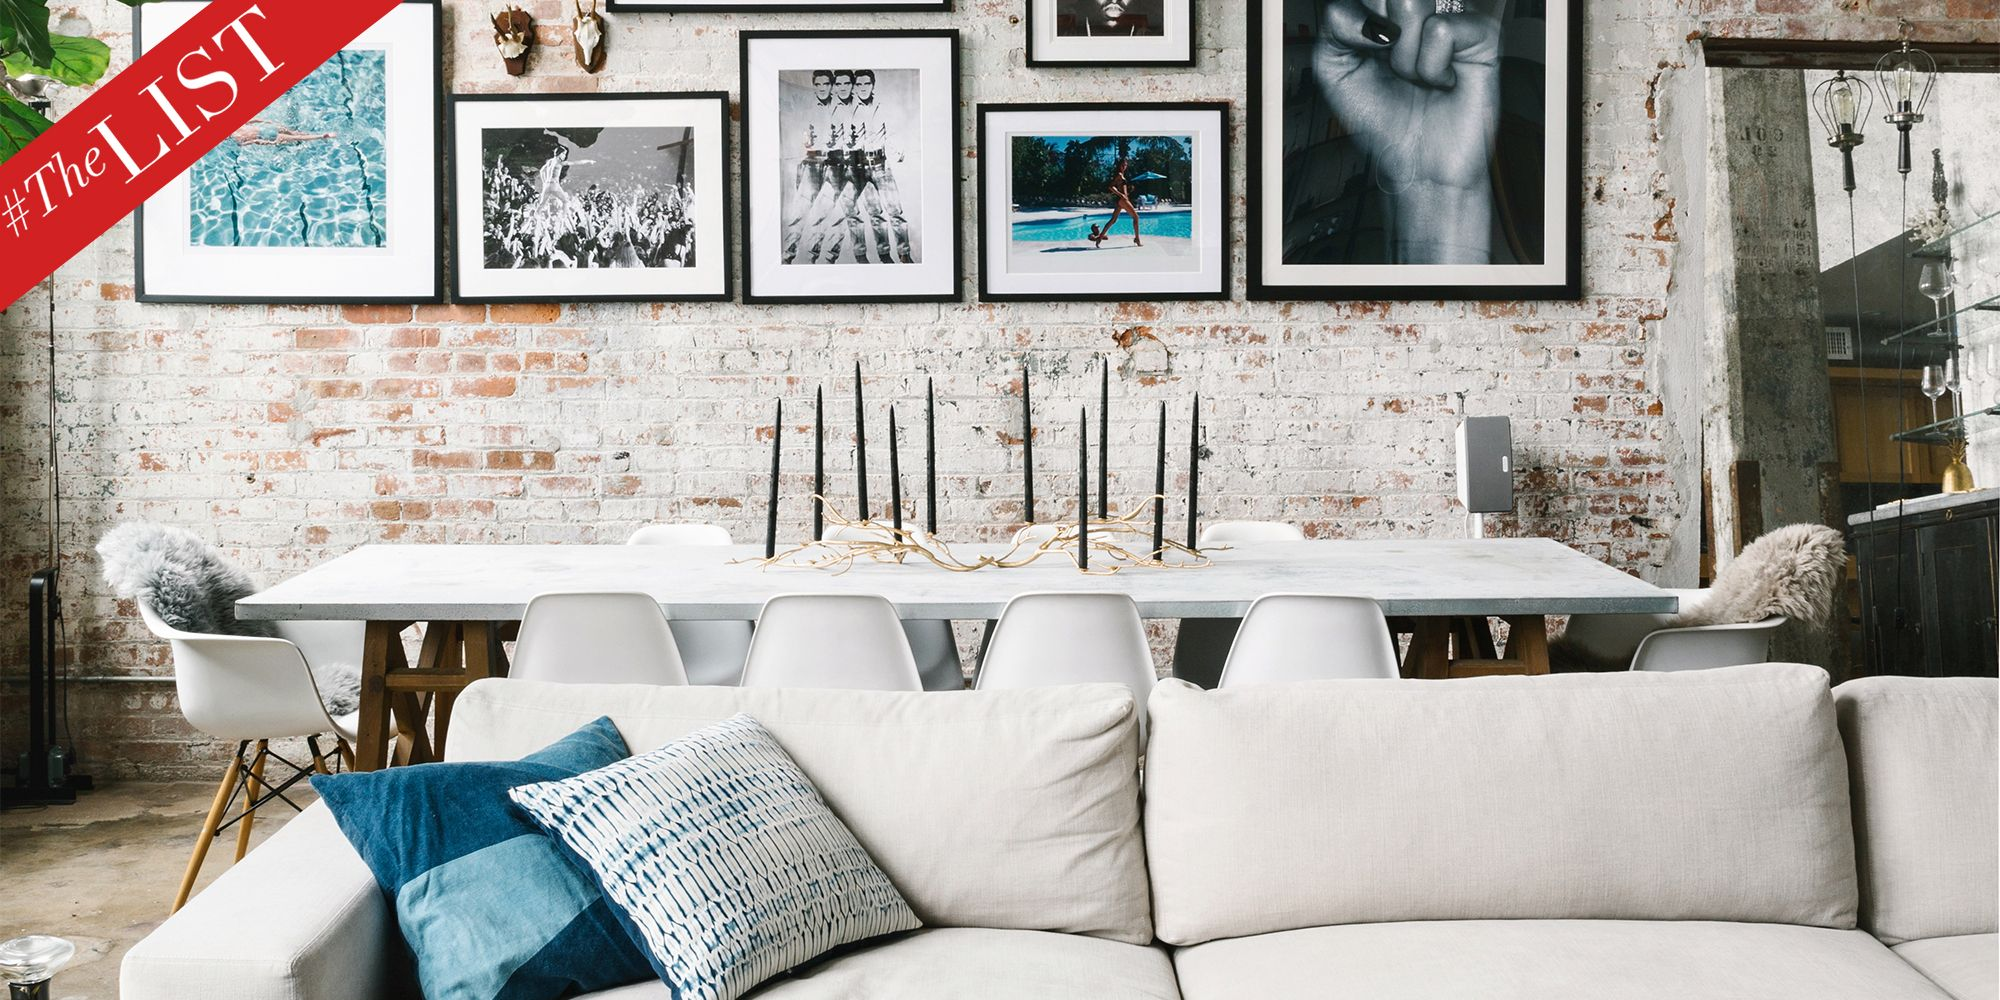 TheLIST: How To Give Your Interiors a Fresh Summer Update TheLIST: How To Give Your Interiors a Fresh Summer Update new picture